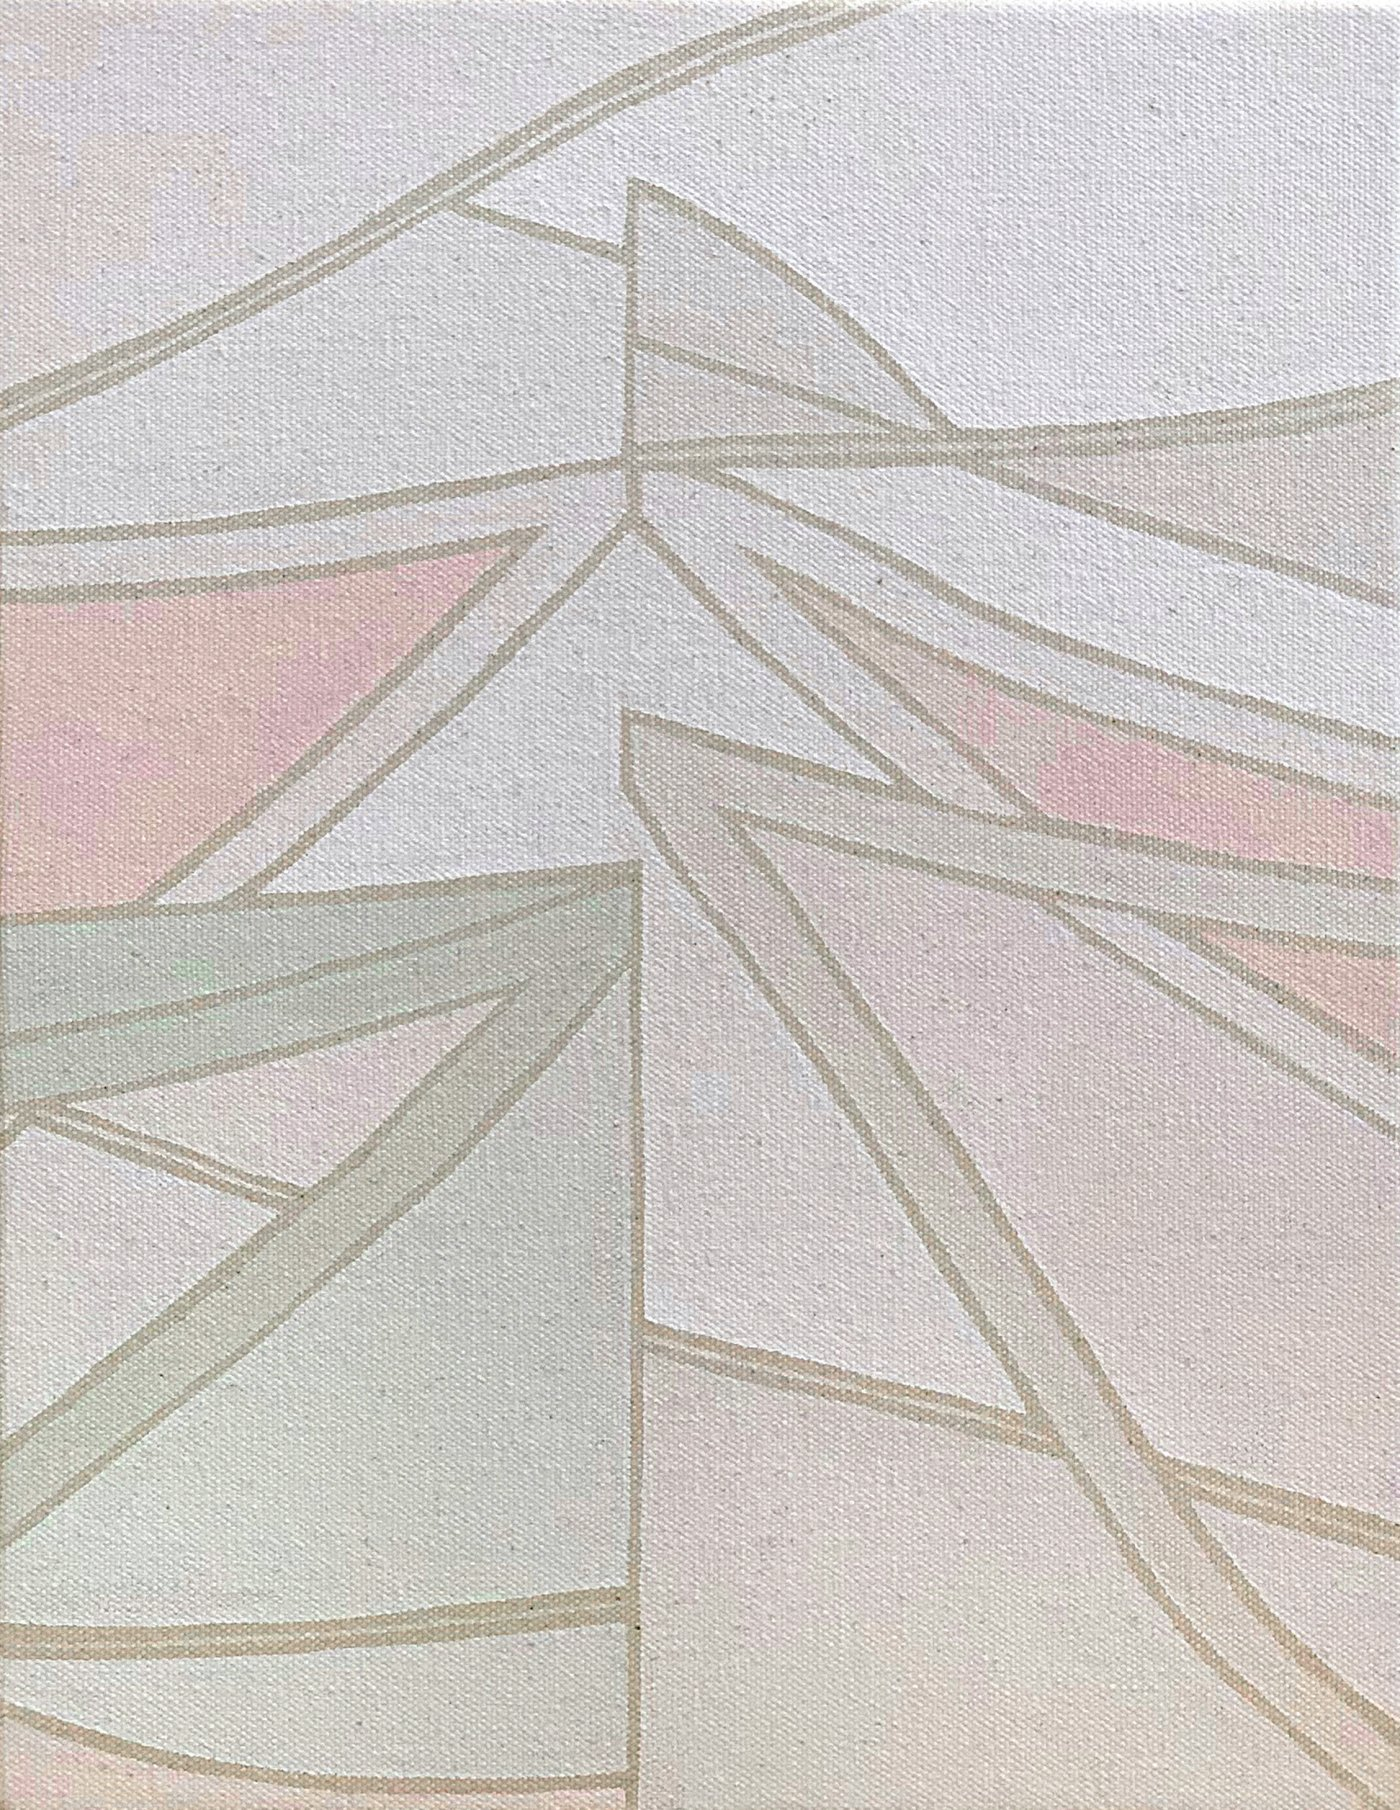 Curtains (Fragment 2)